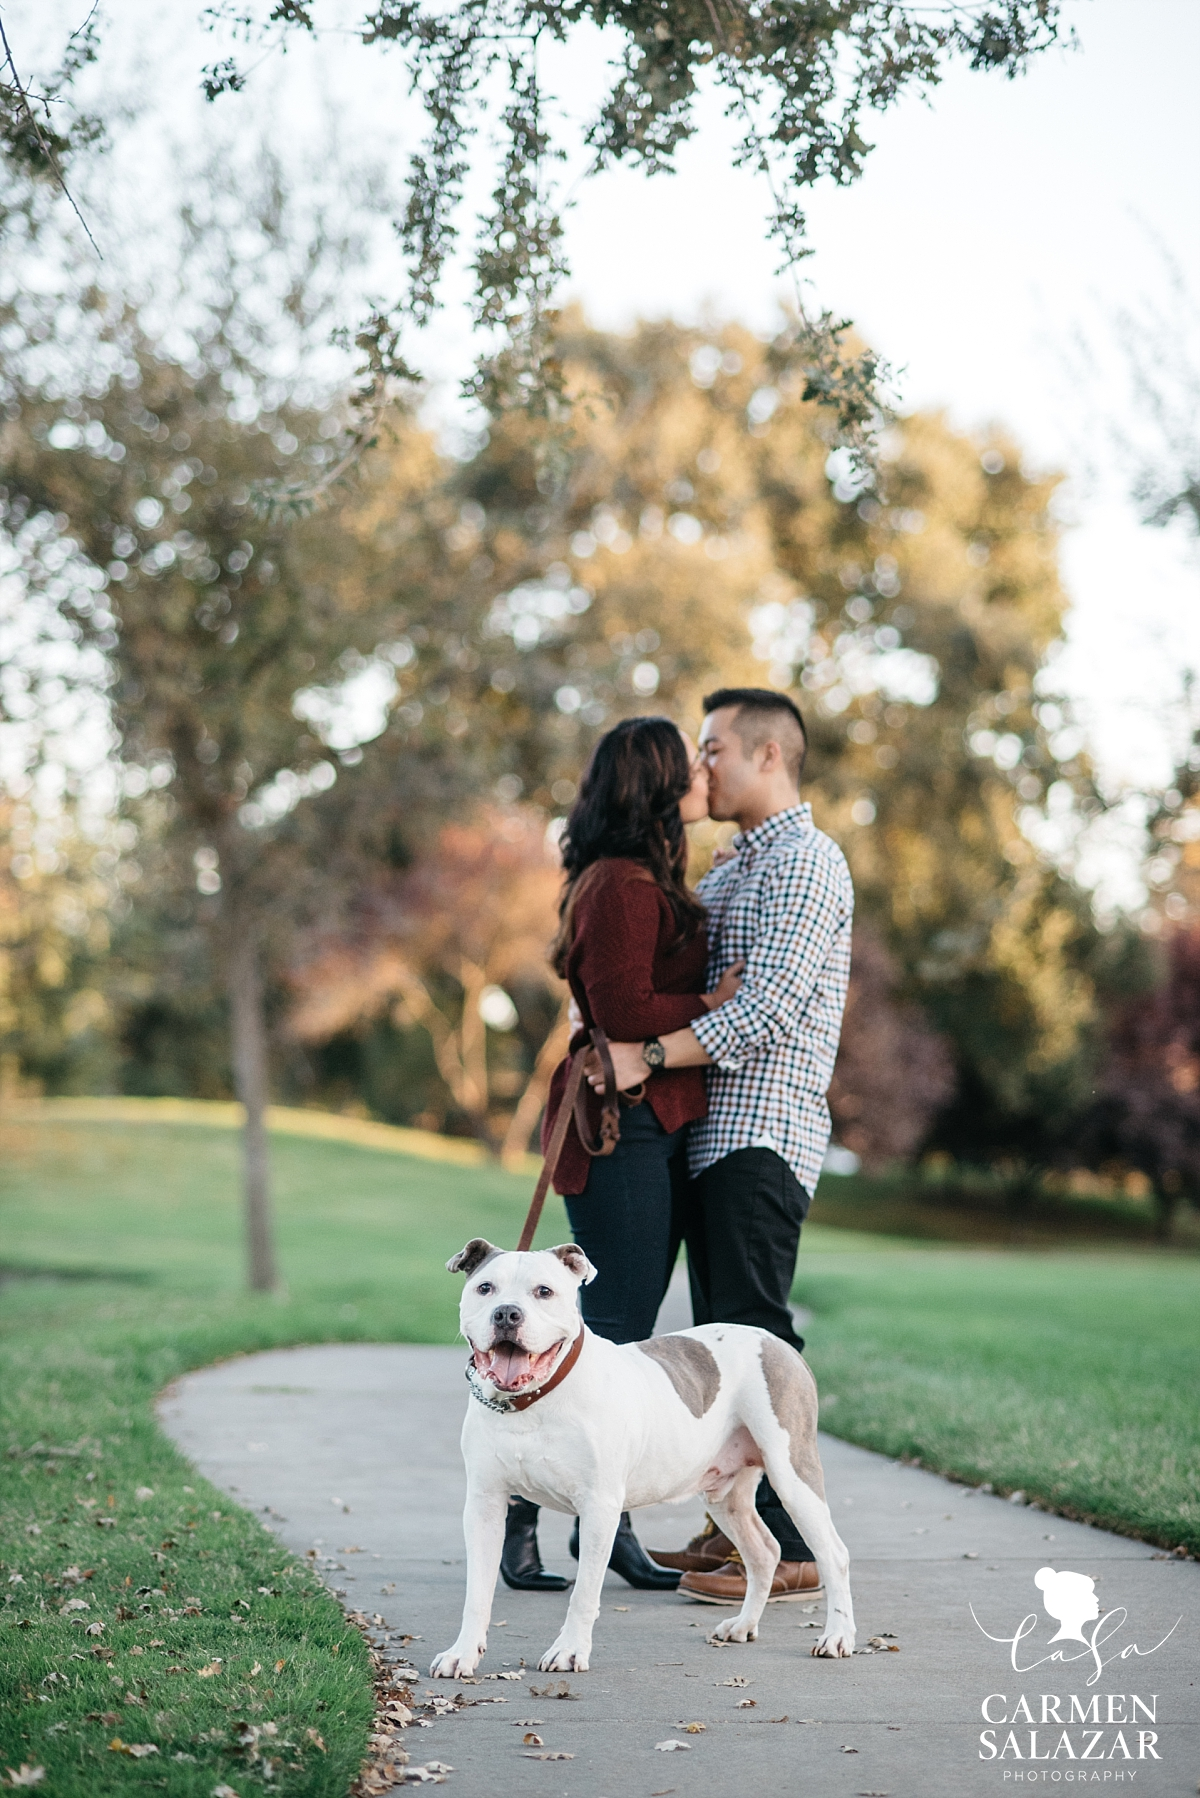 Dog-friendly engagement photographer - Carmen Salazar